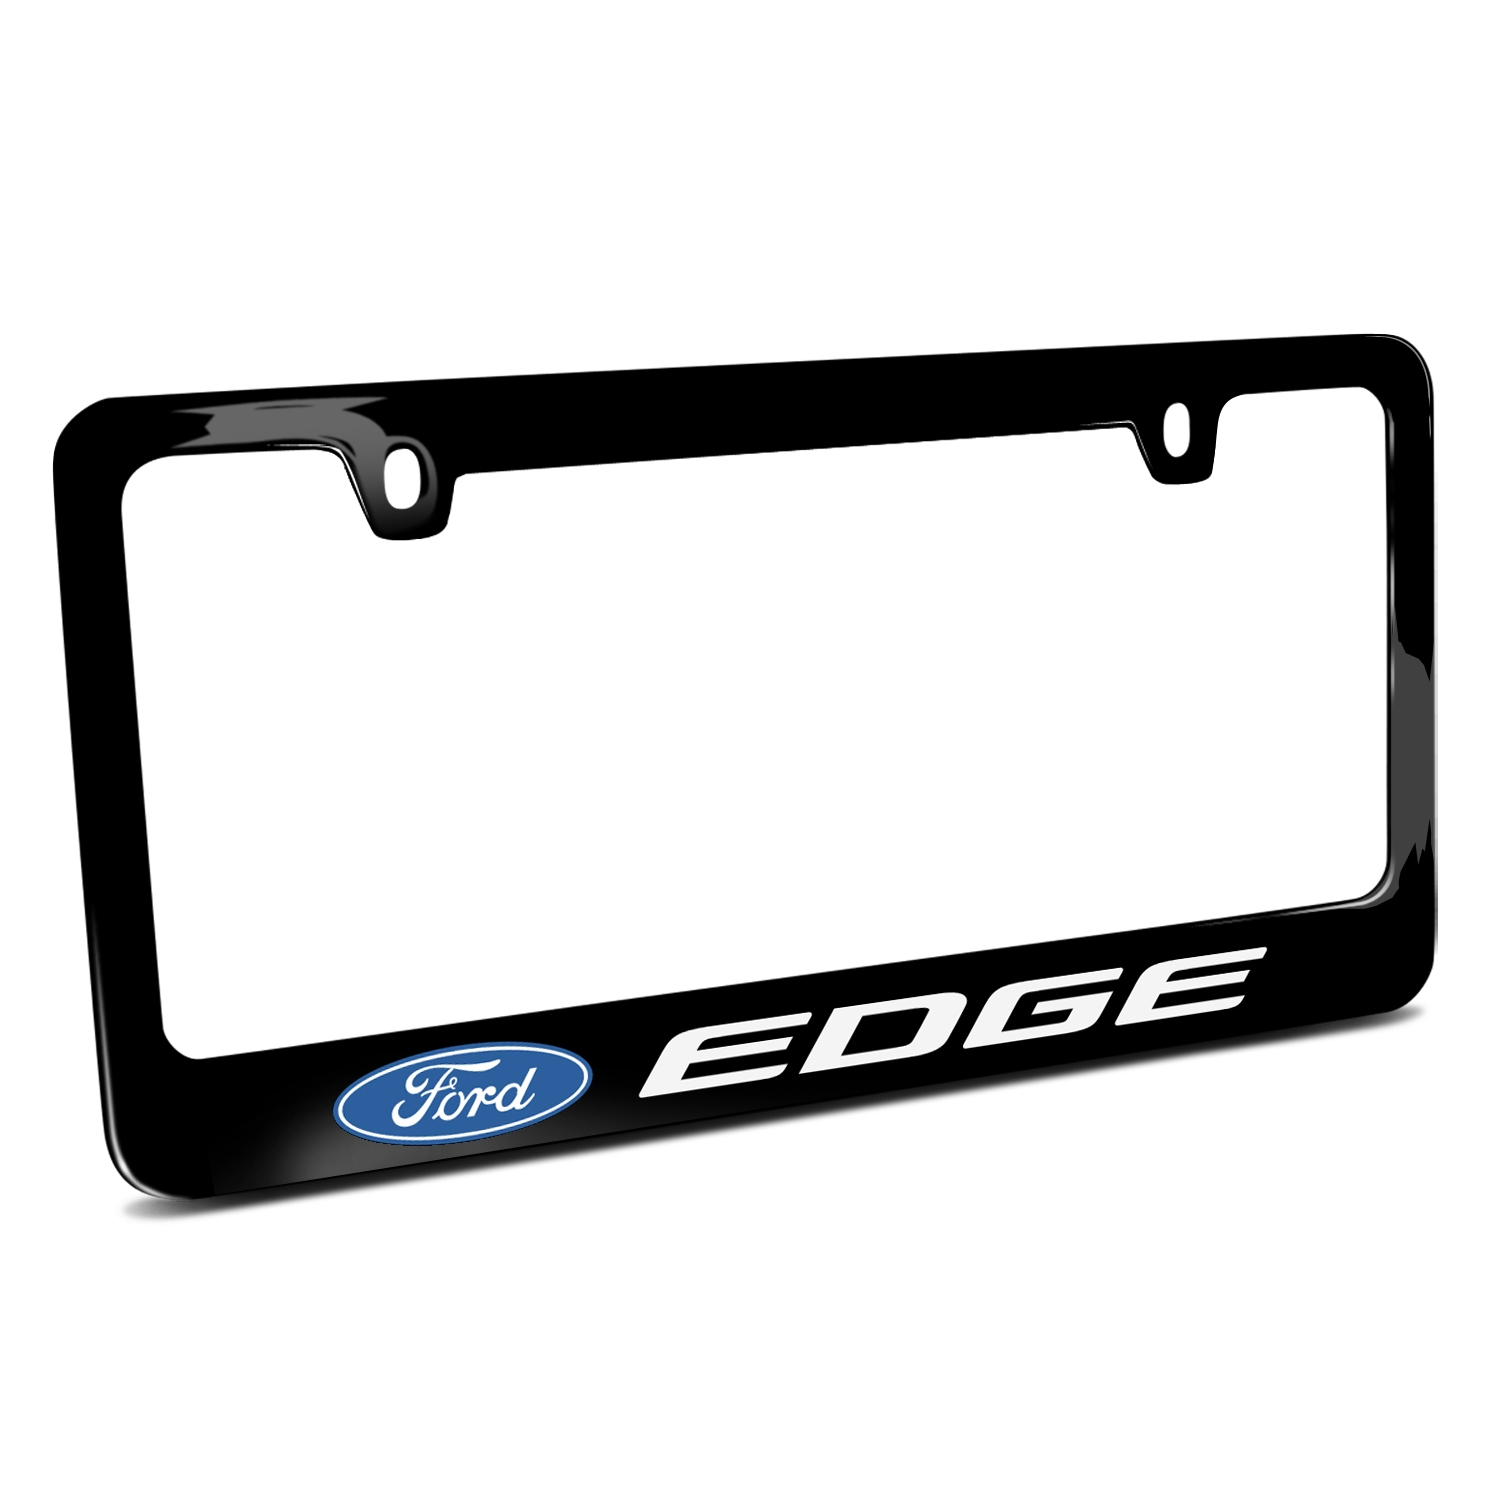 Ford Edge Black Metal License Plate Frame